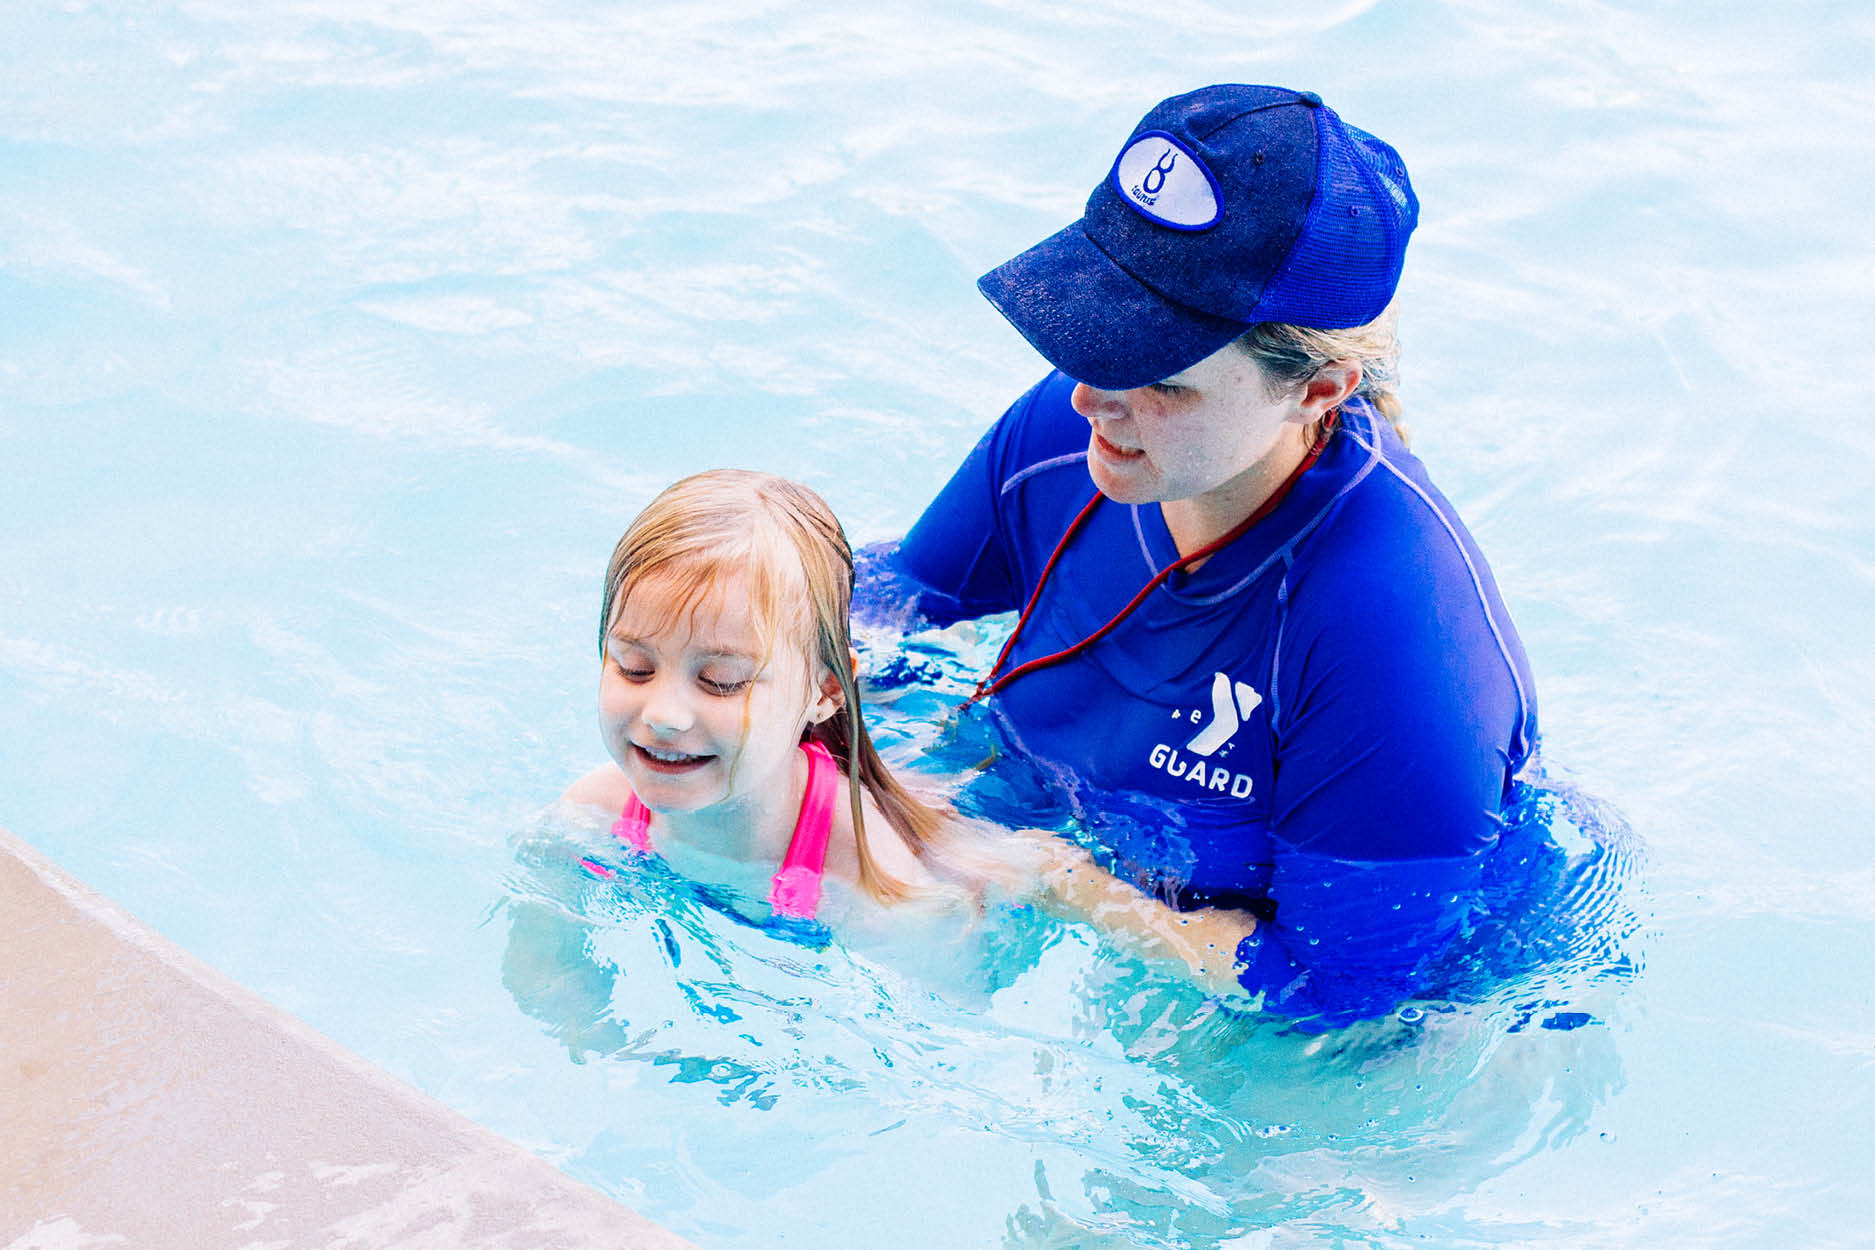 Lifeguard assisting female child during a swim lesson